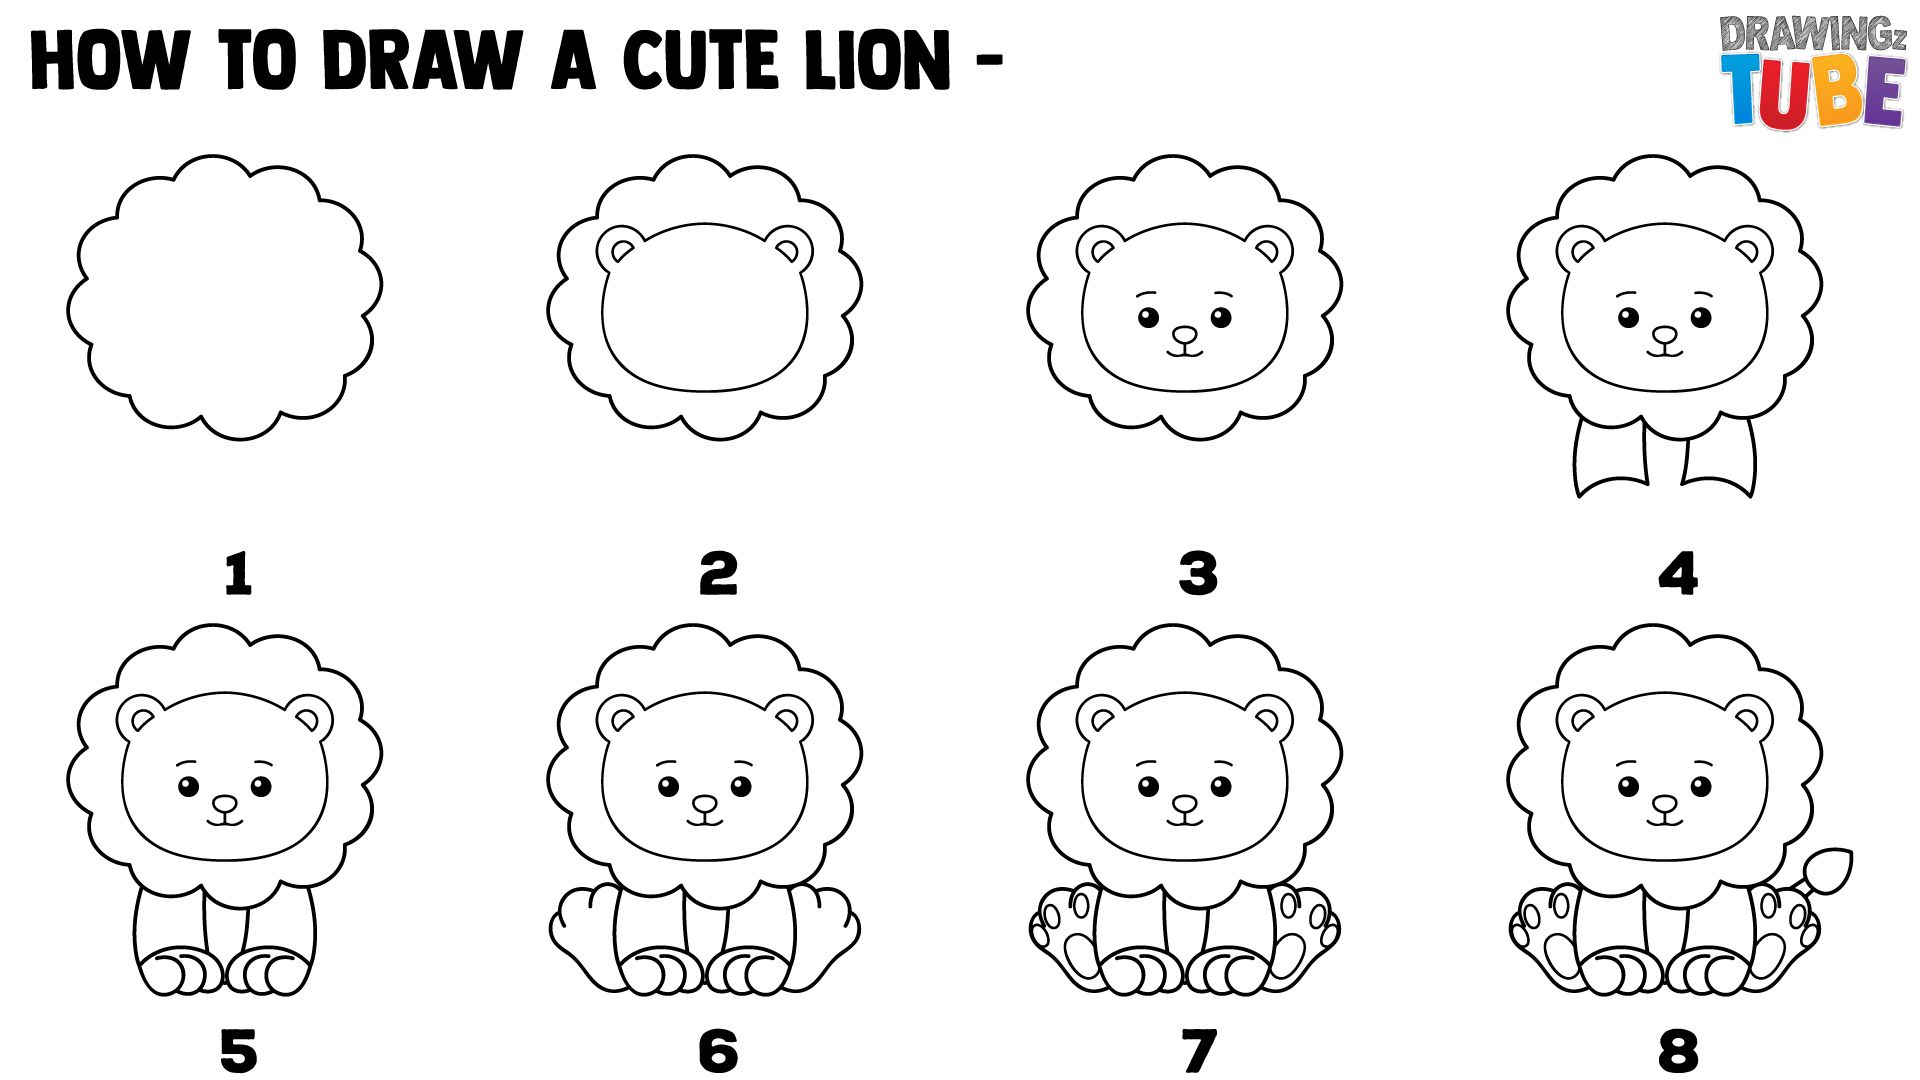 How To Draw A Cute Lion For Kids Step By Step Drawings For Kids Lions For Kids Step By Step Drawing Cute Lion